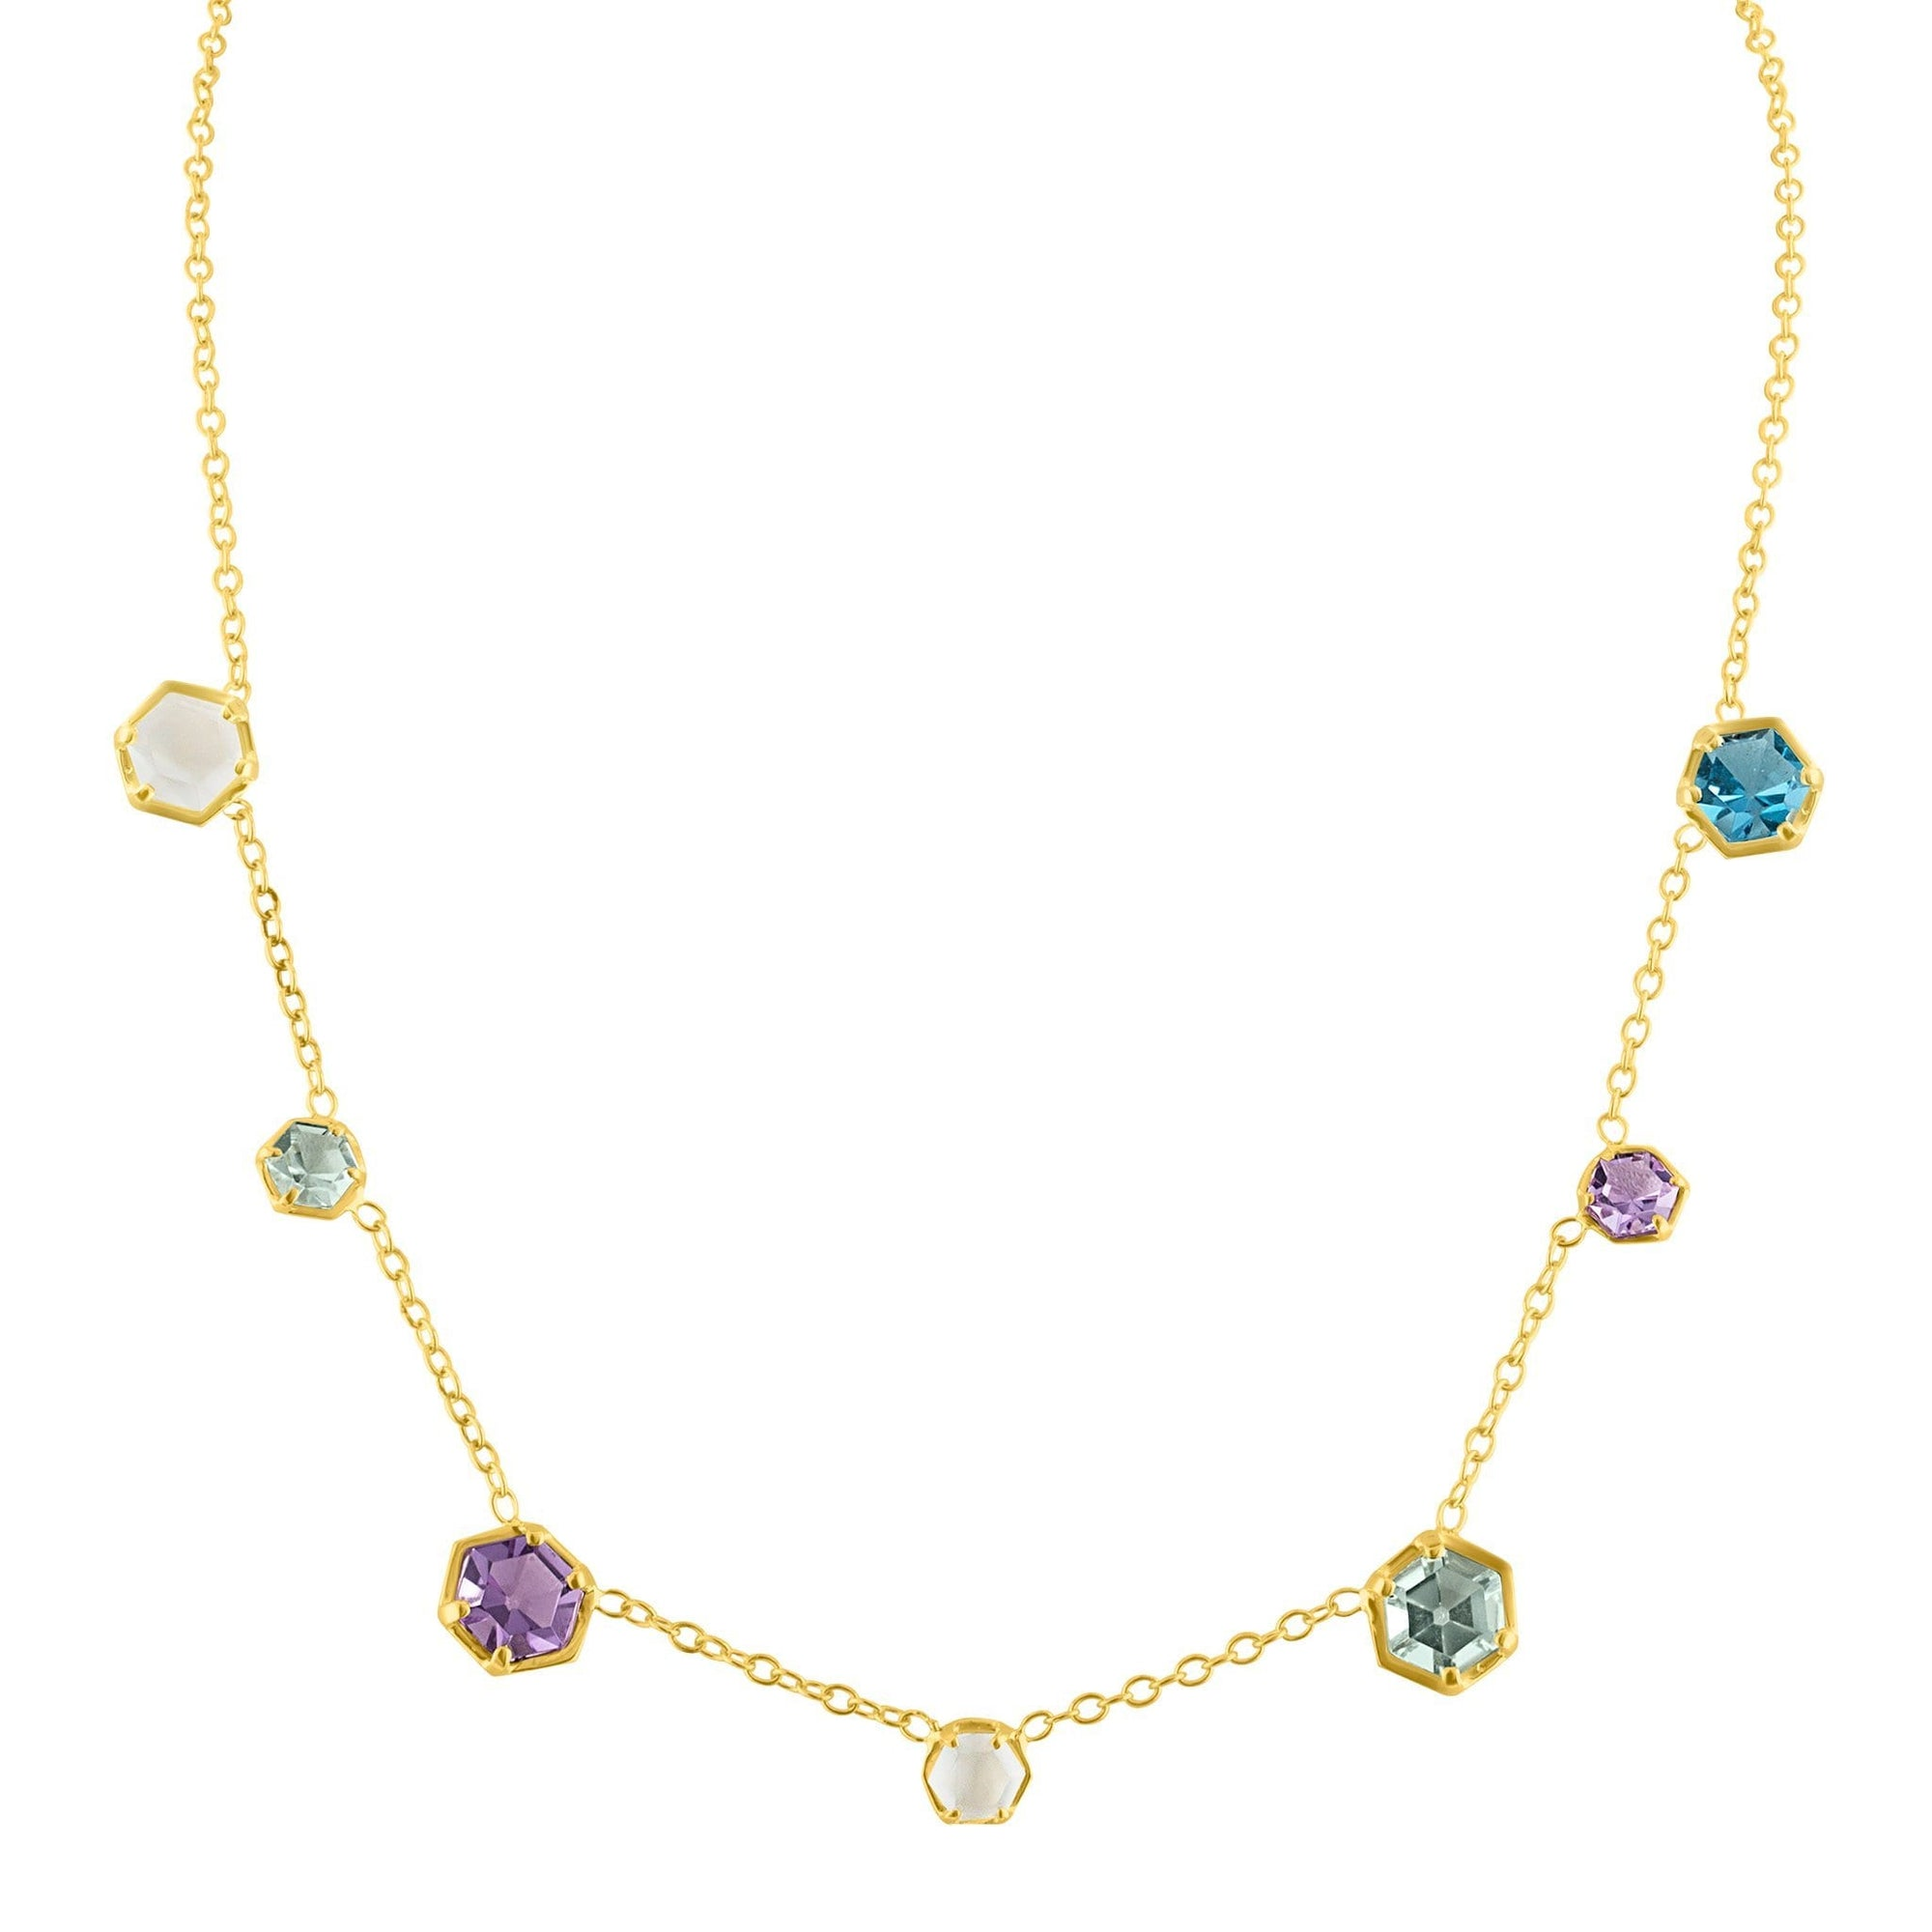 Glitter Necklace: 14k Gold, Topaz, Amethyst, Moonshine